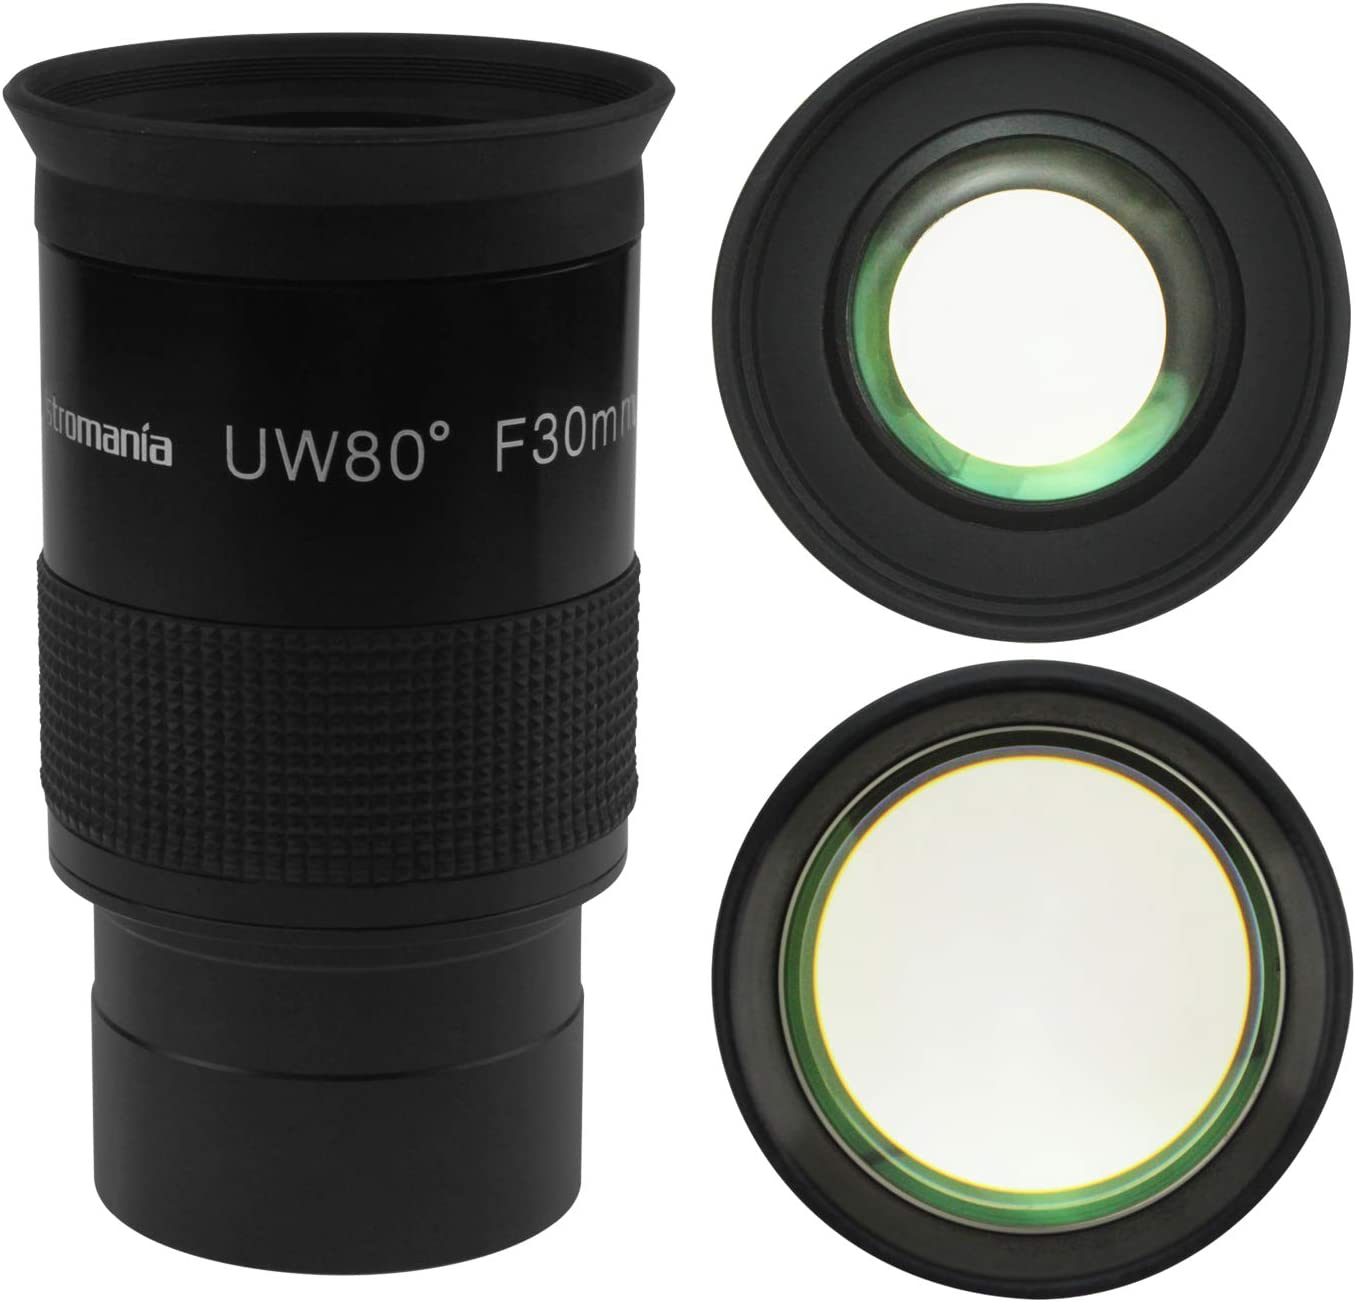 F15mm Astromania Fully Multi-Coated 2 Untra-Wide 80 Degree Eyepiece for Telescope